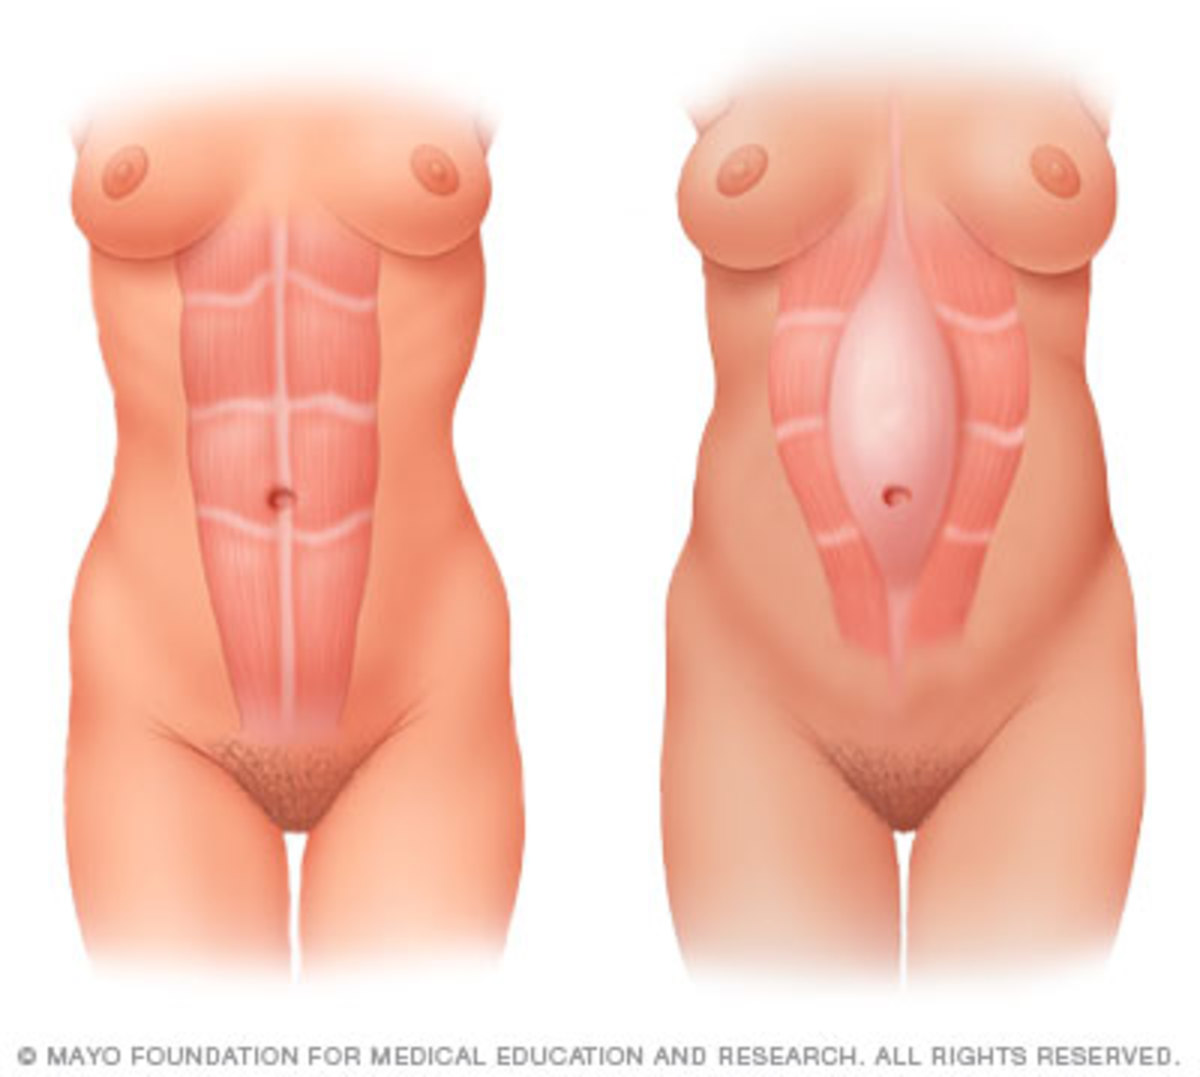 During pregnancy, the growing uterus sometimes causes the abdominal muscles to separate (diastasis recti).